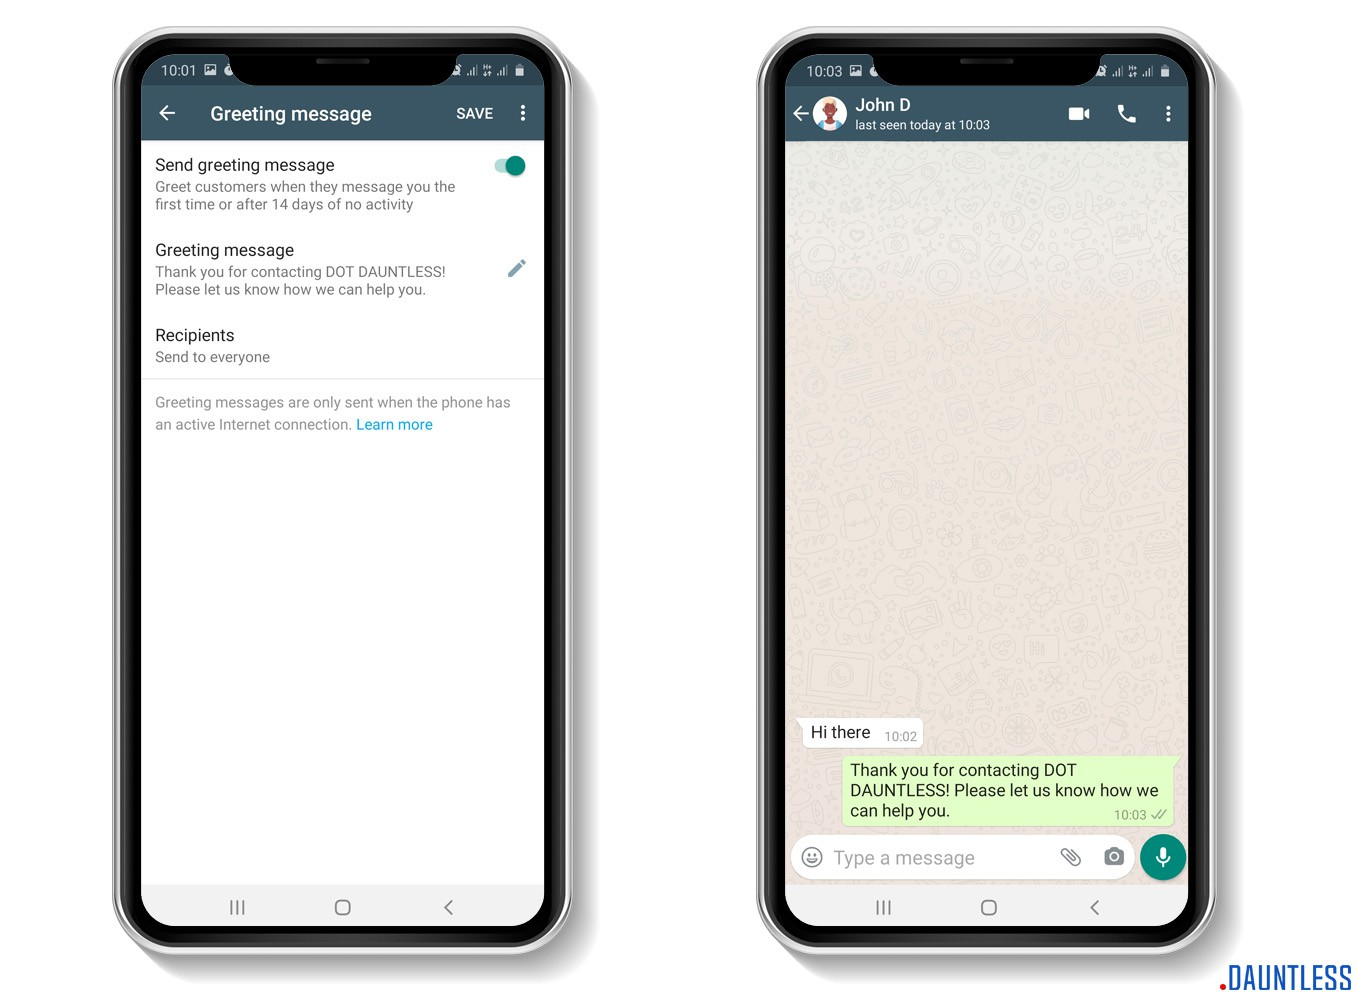 The greeting message feature or tool of the whatsapp business app